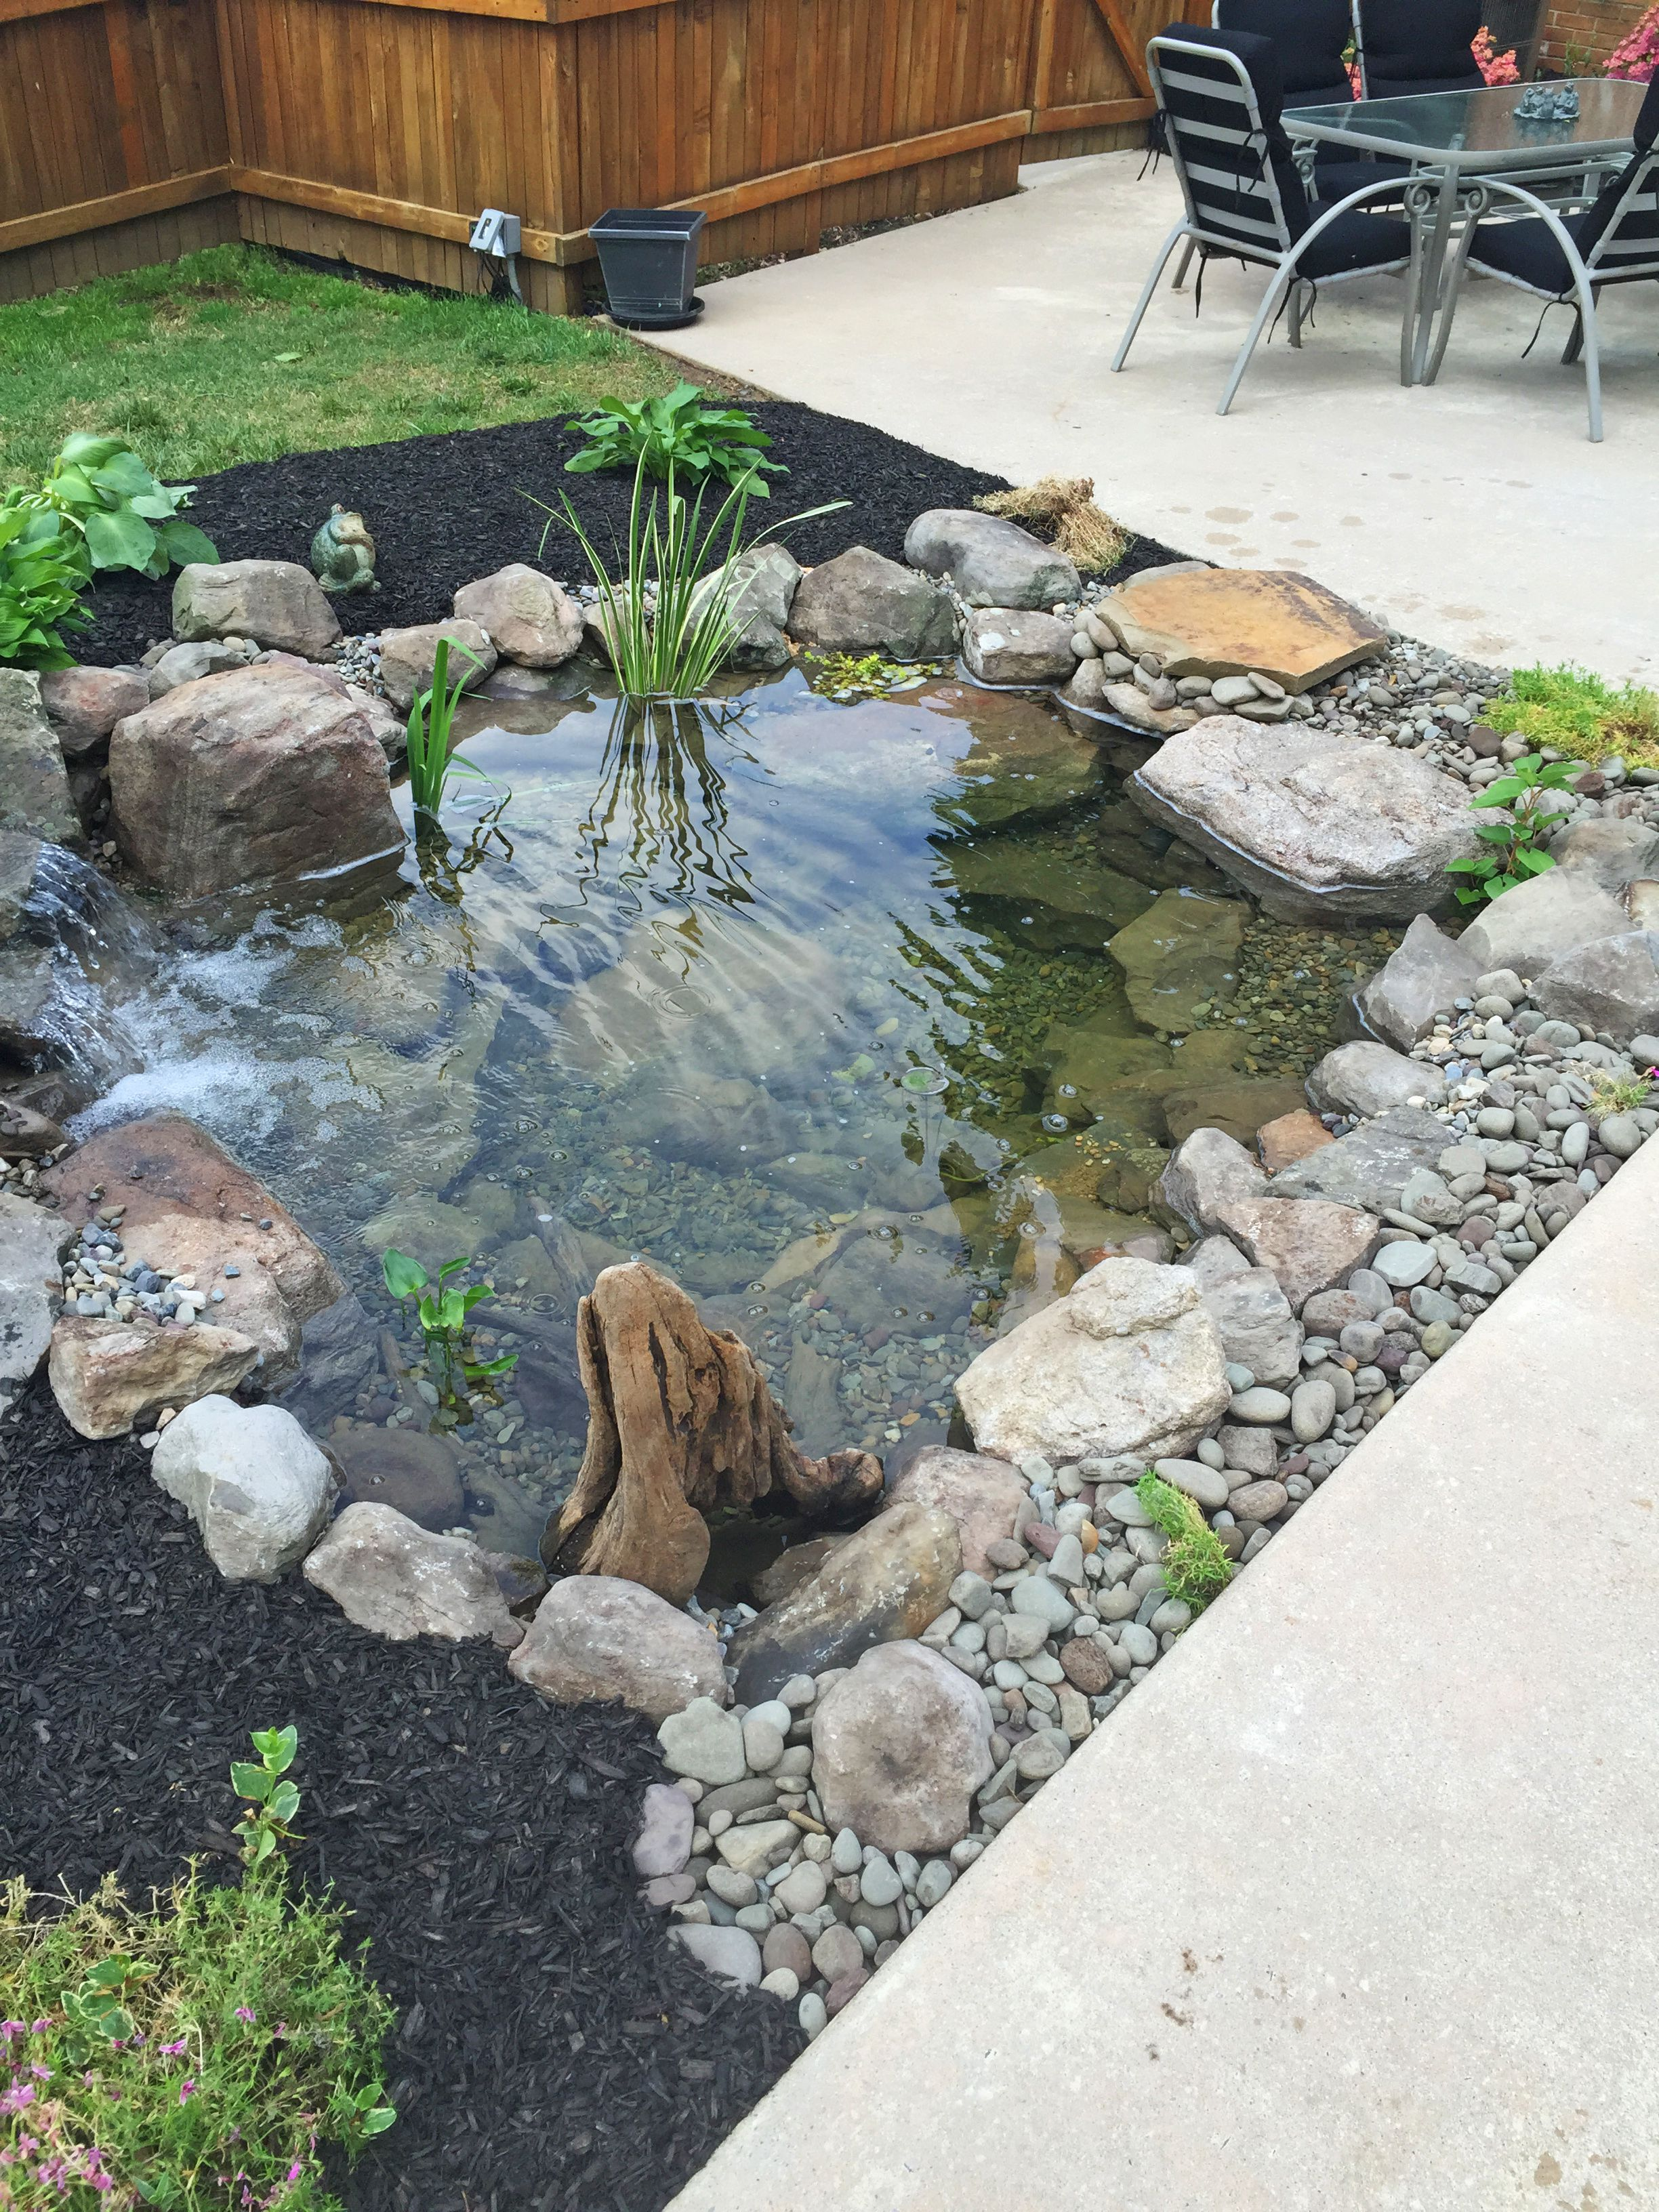 Backyard fish pond waterfall koi water garden waterscapes for Fish pond waterfall ideas